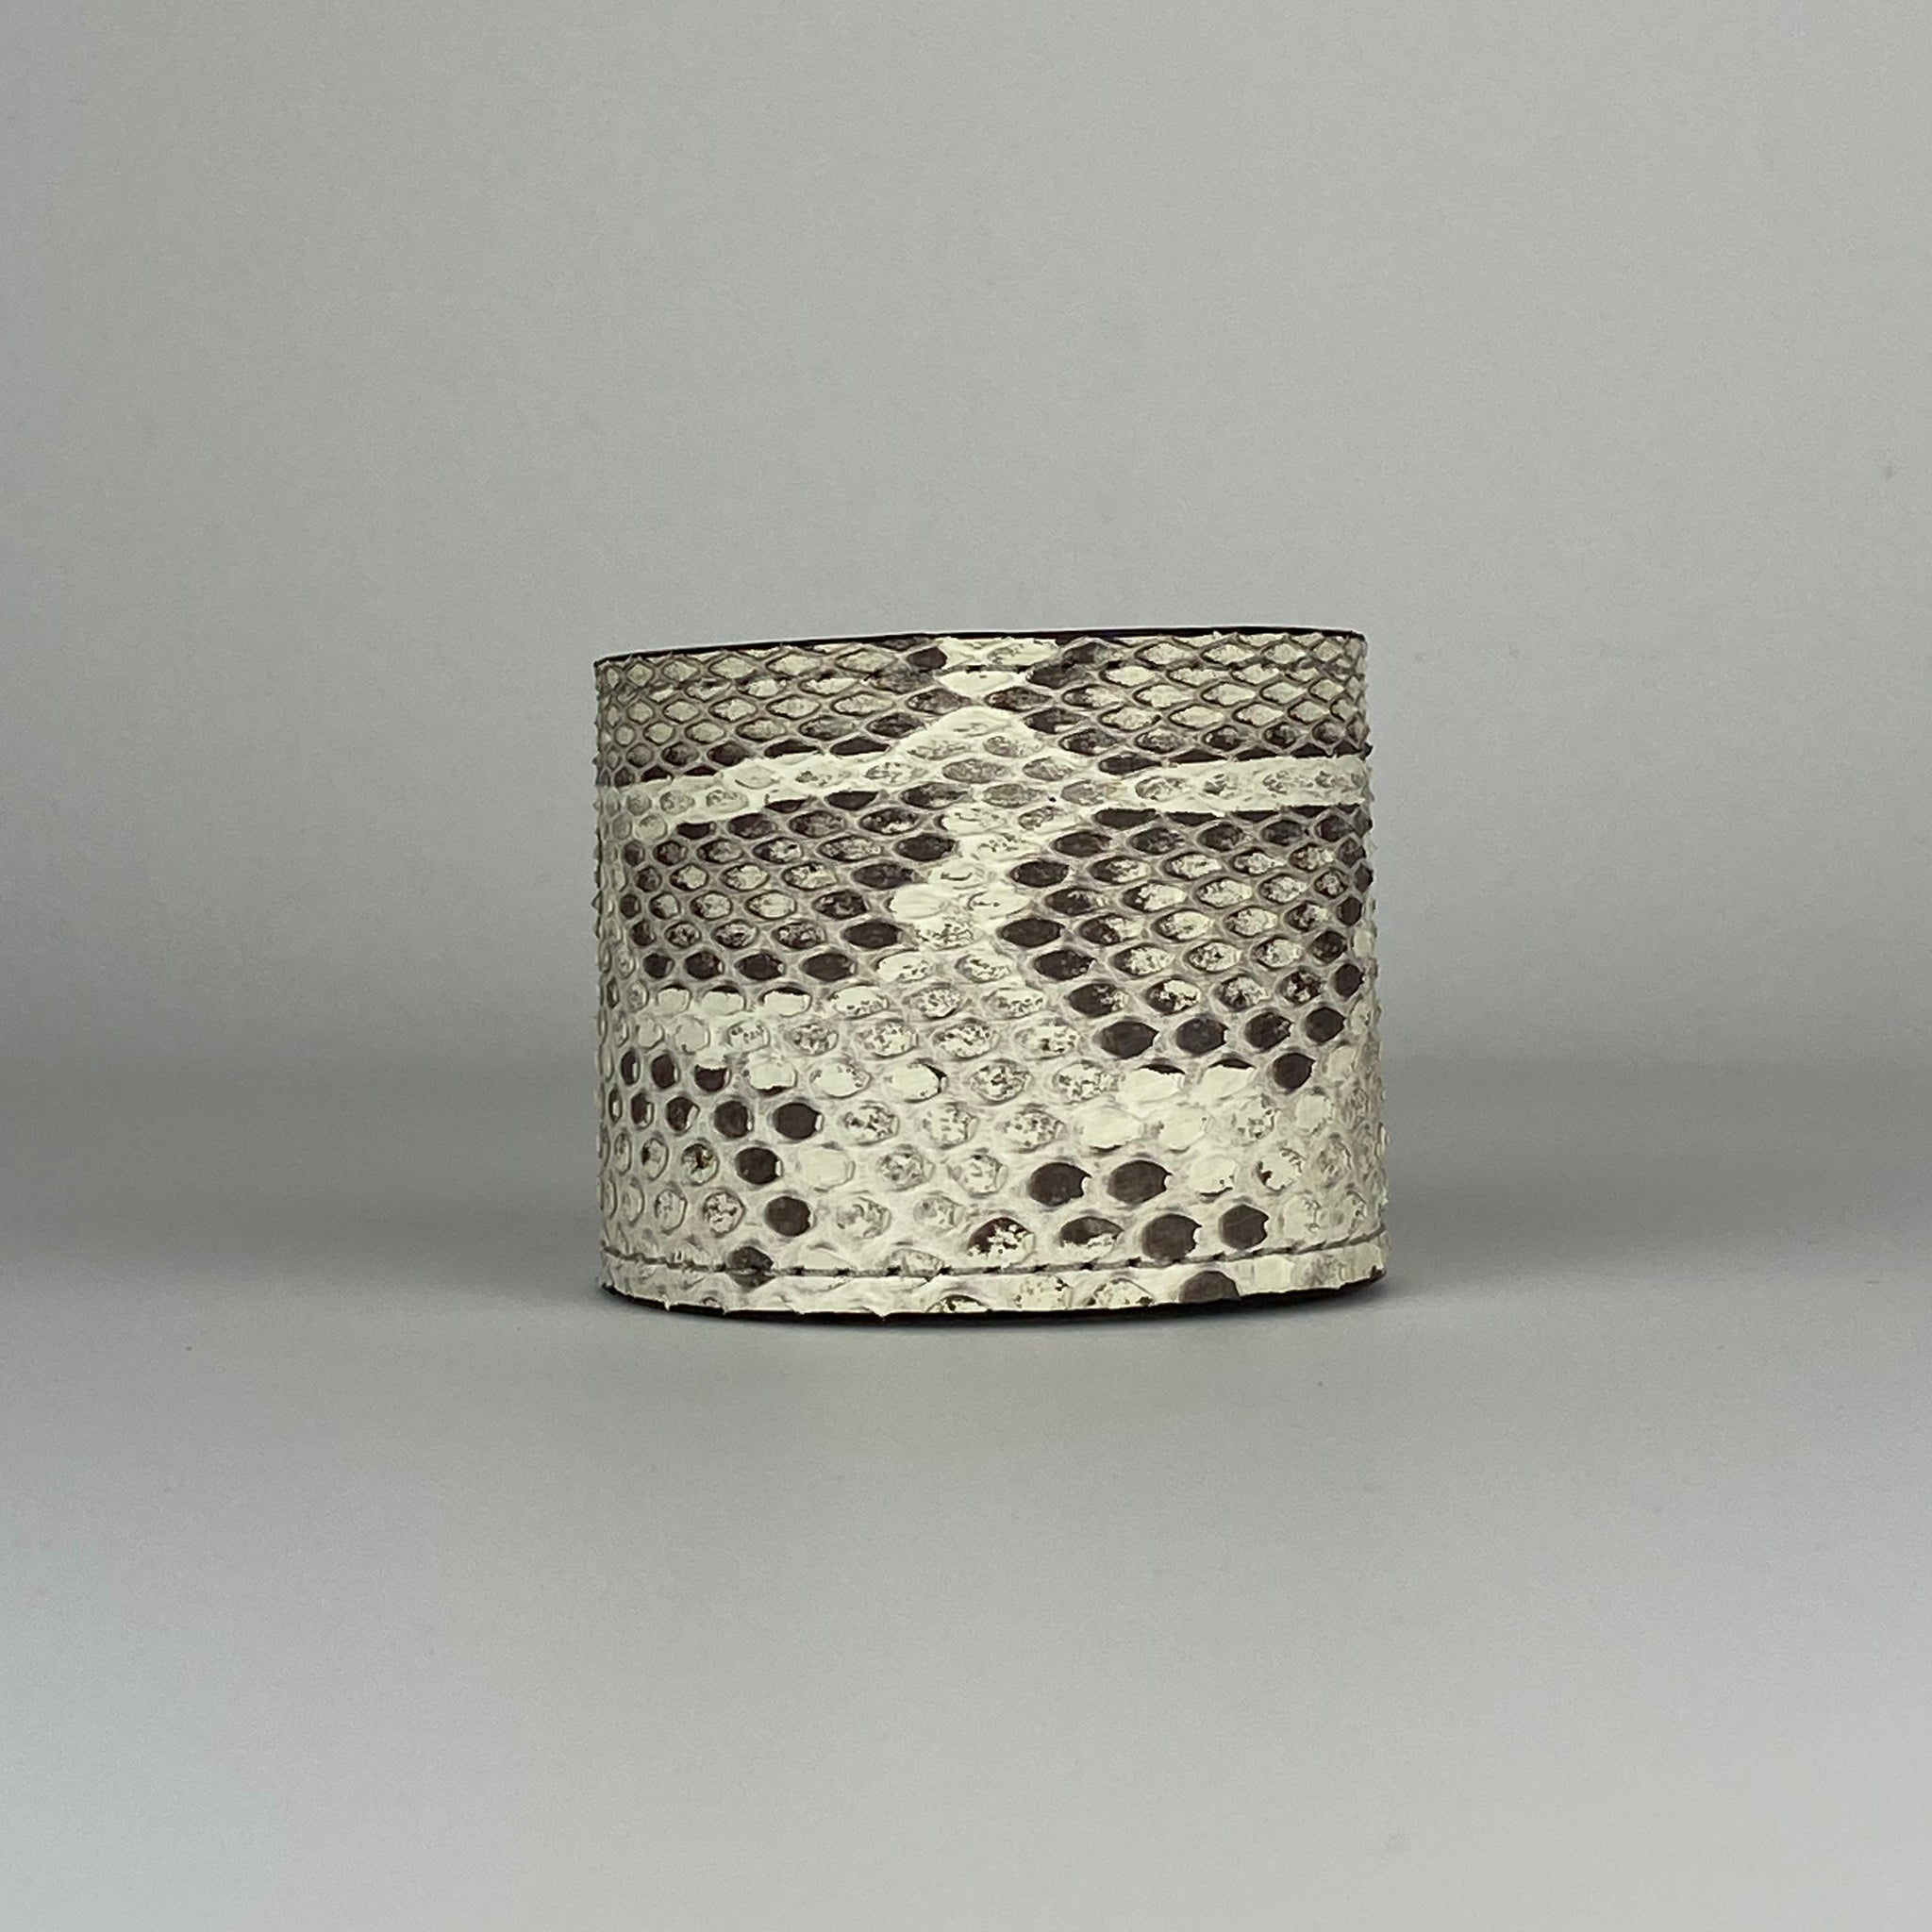 BLACK & WHITE SNAKESKIN CUFF S/M ADJUSTABLE